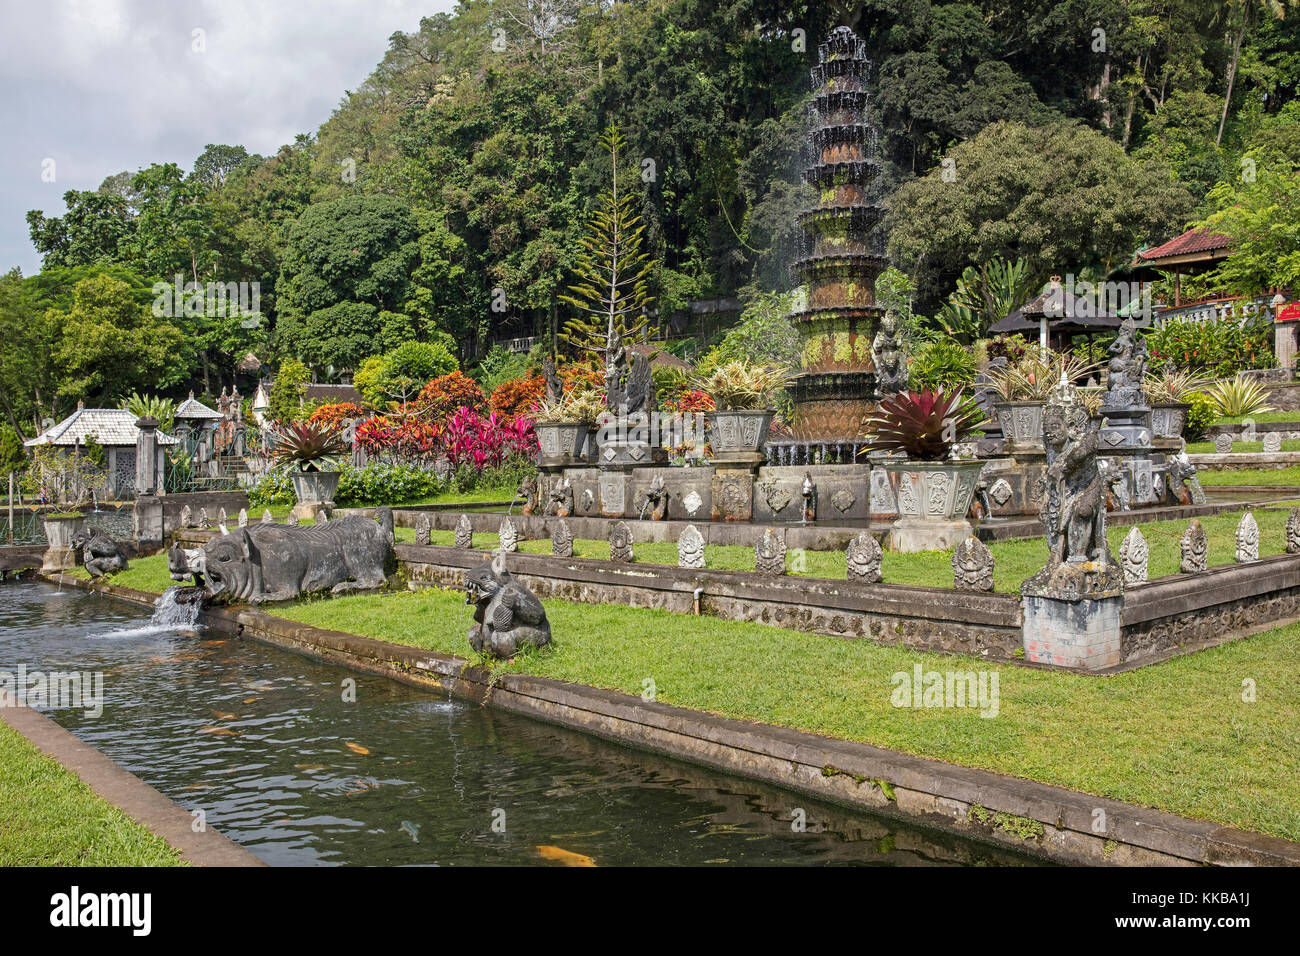 Fountain at Tirta Gangga, former royal water palace at Ababi, Karangasem near Abang in eastern Bali, Indonesia - Stock Image